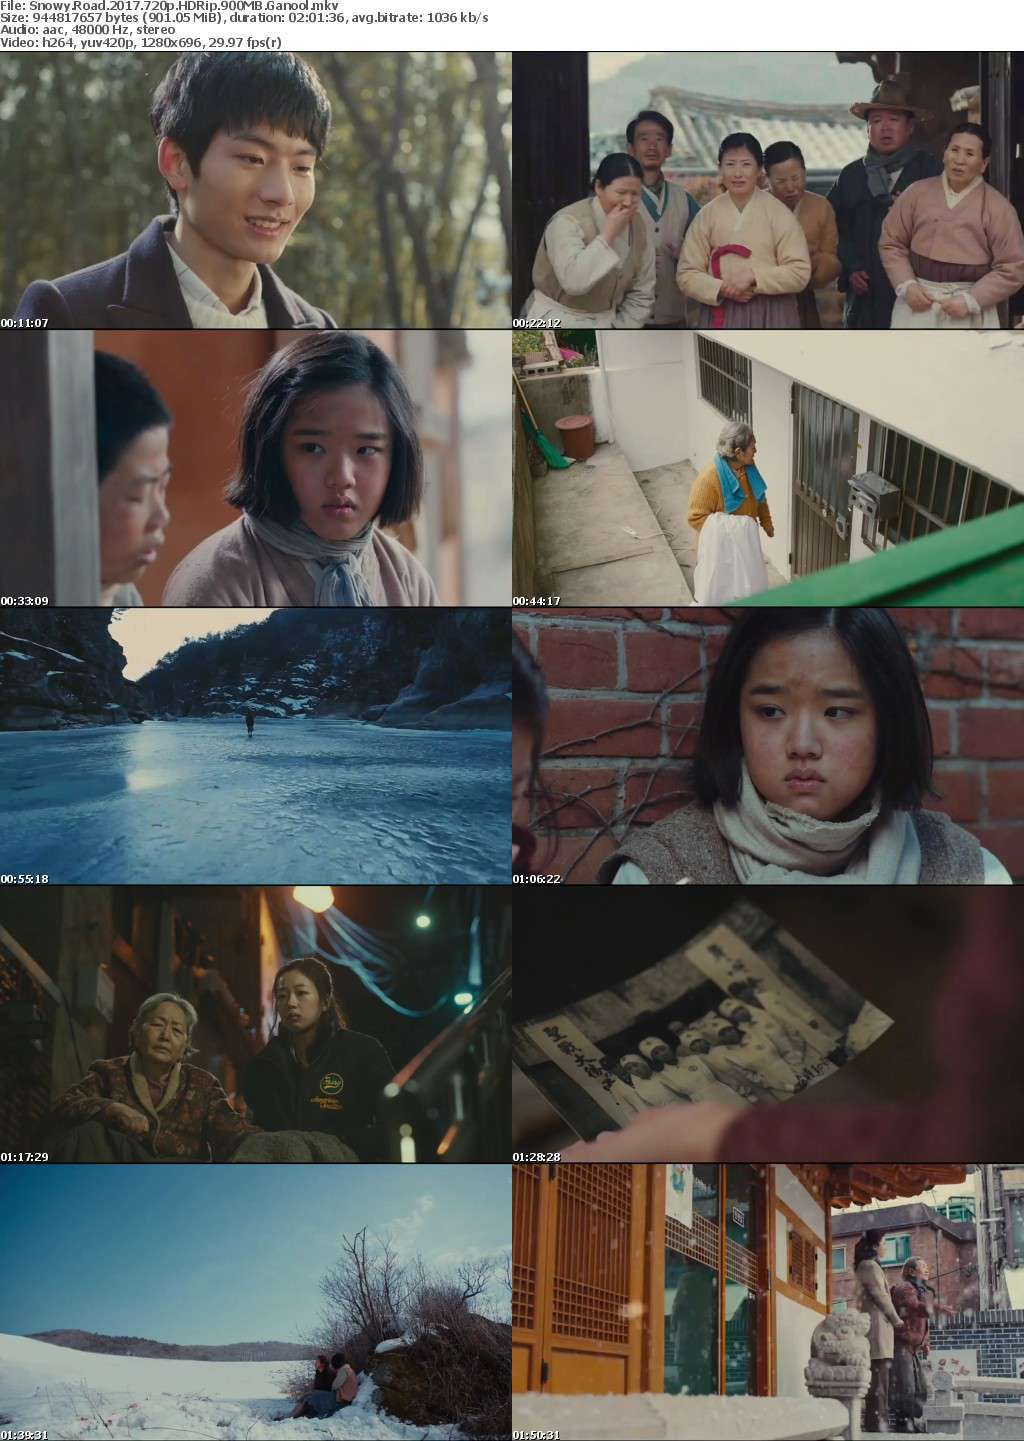 Snowy Road (2017) 720p HDRip 900MB Ganool